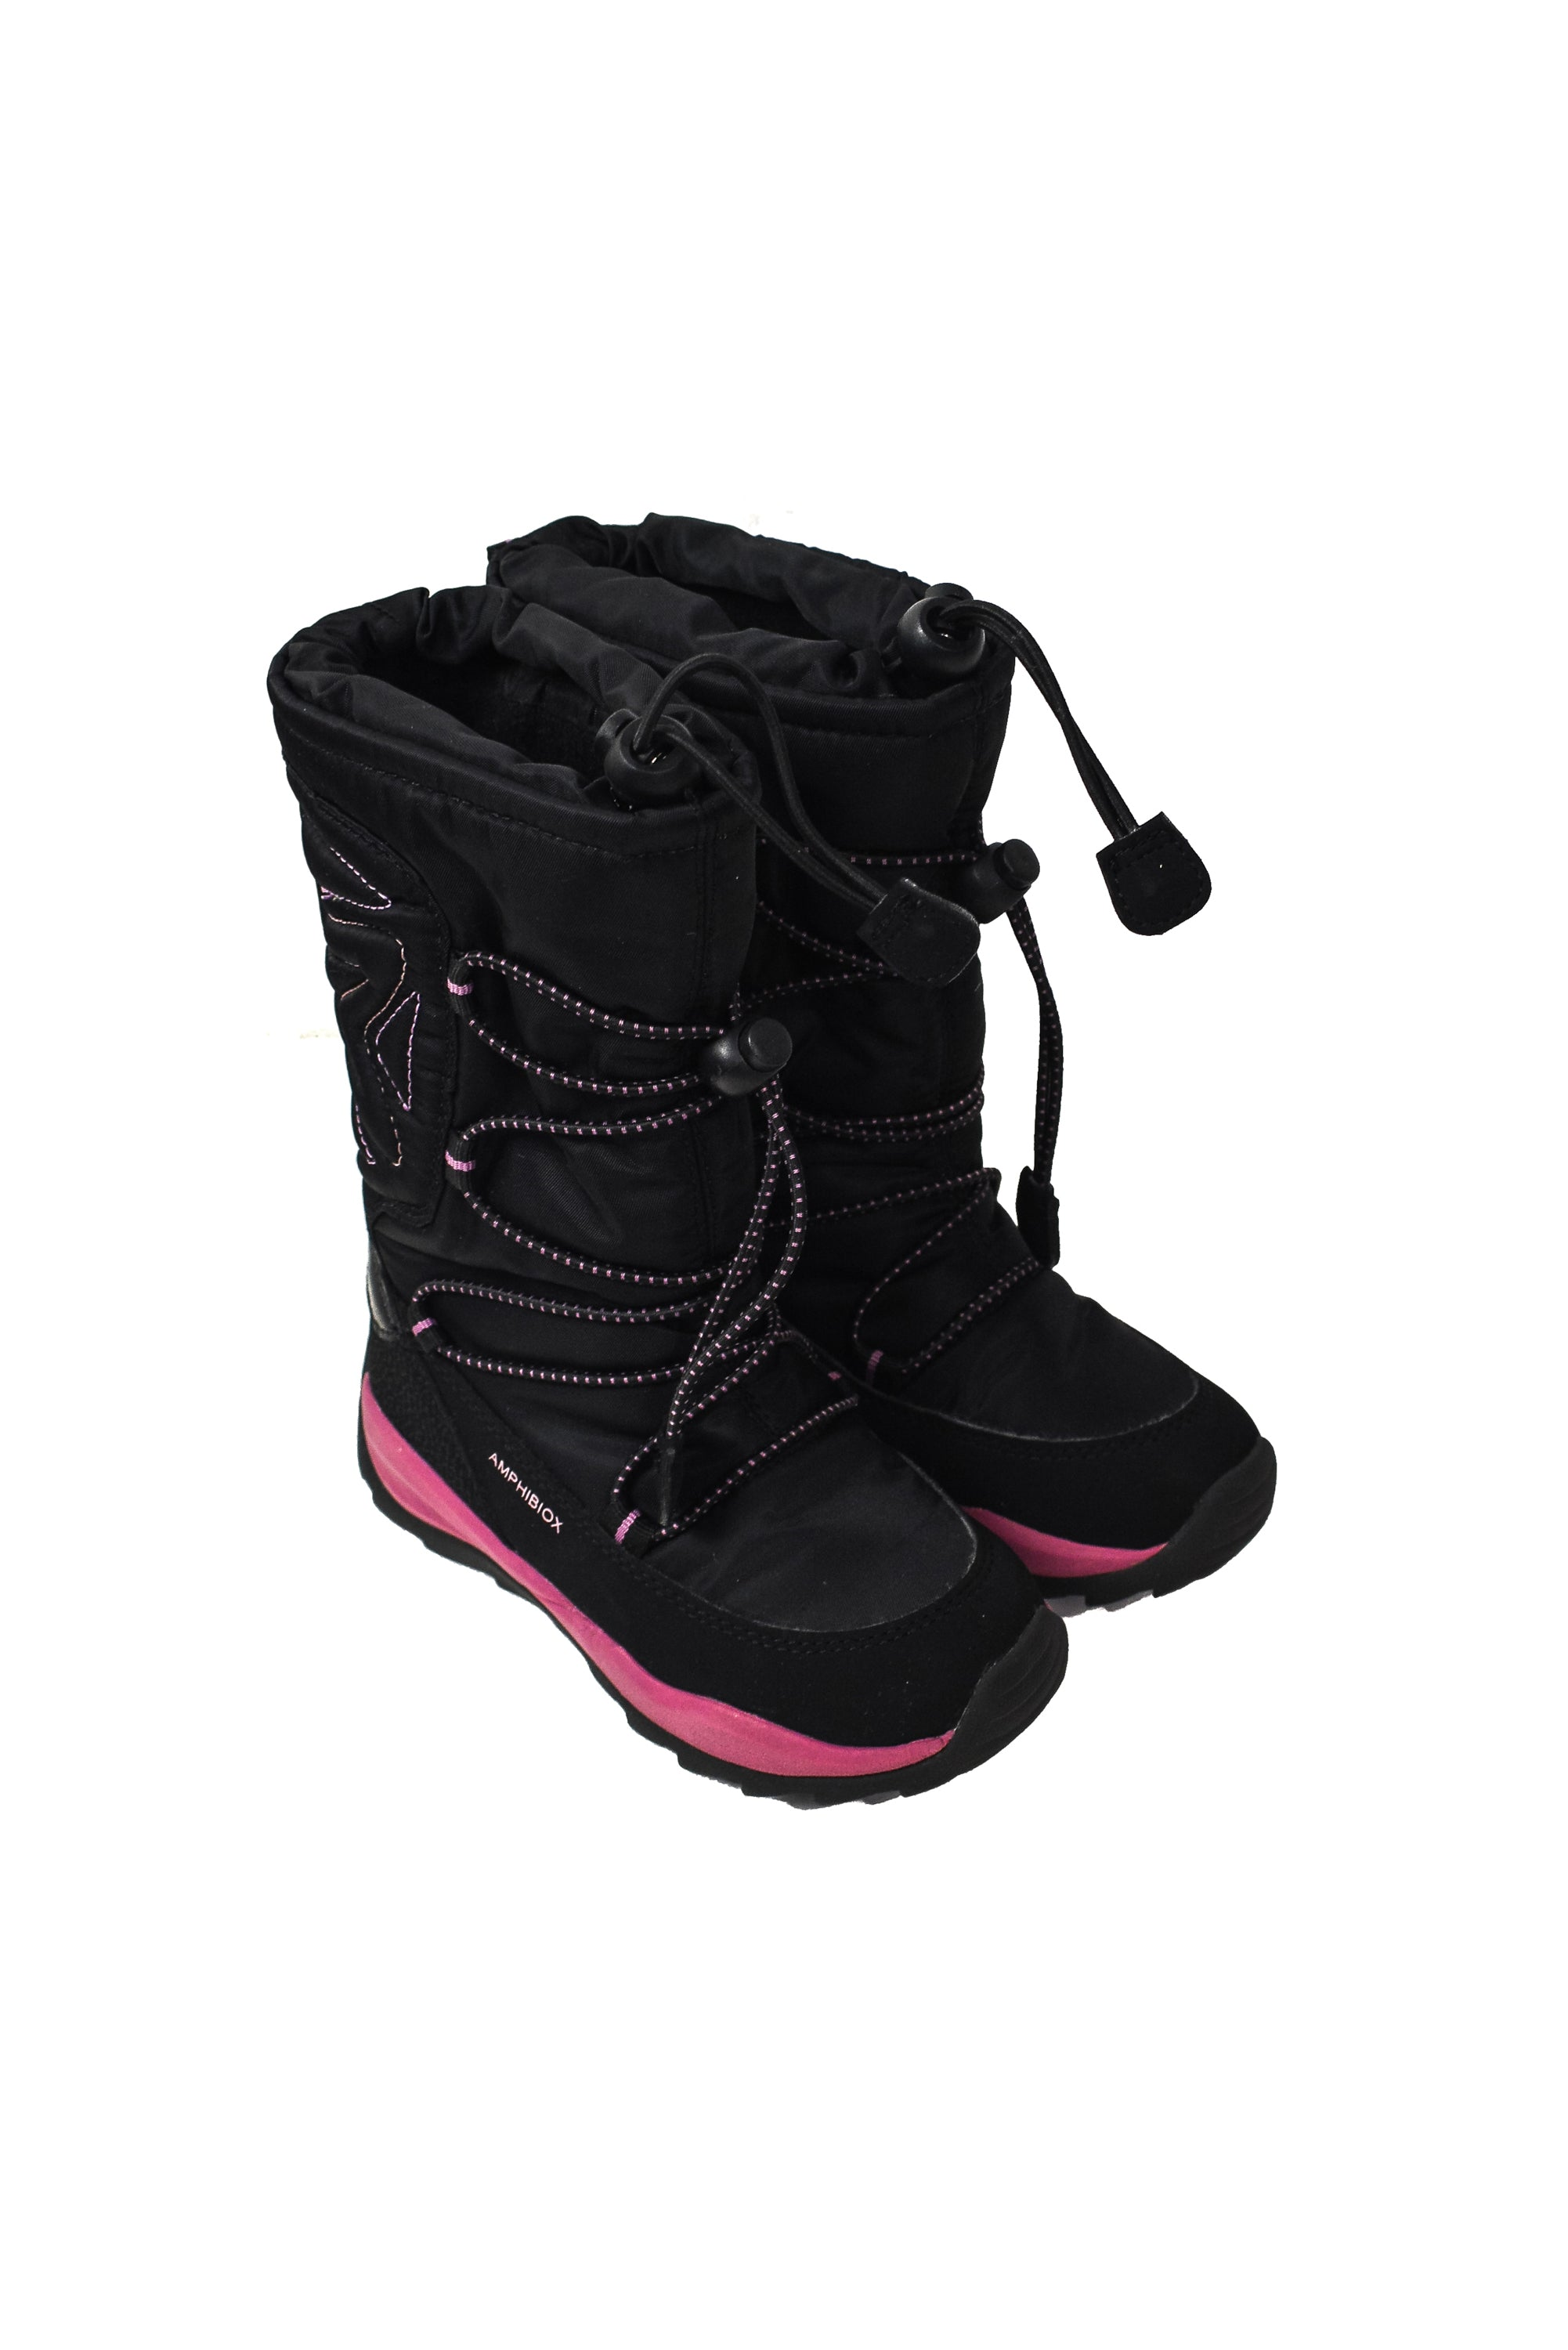 Snow Boots 5T (EU28) at Retykle